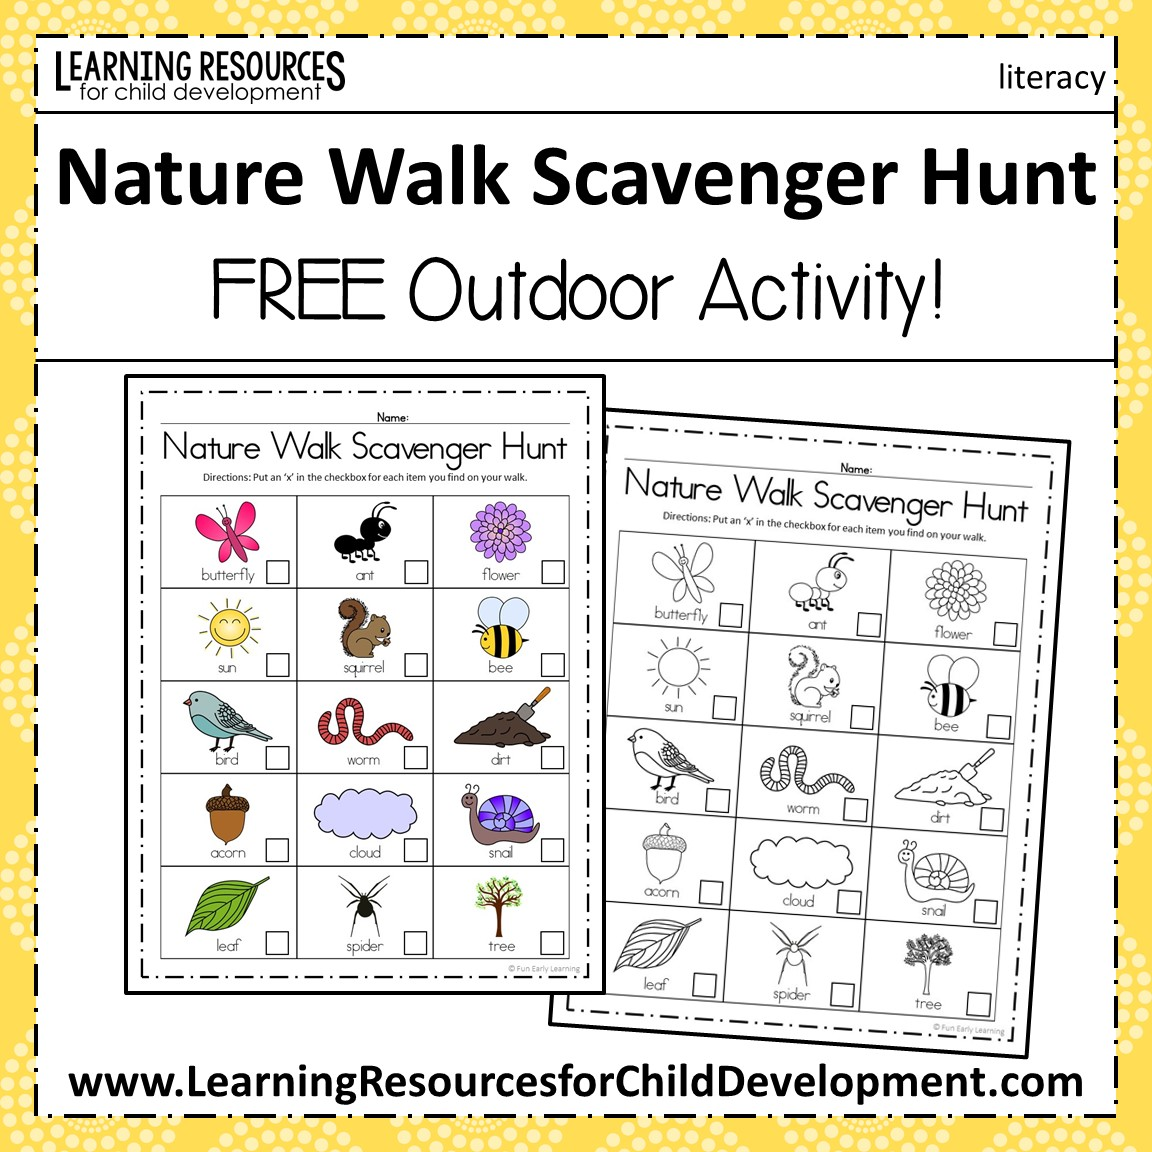 Nature Walk Scavenger Hunt Activity